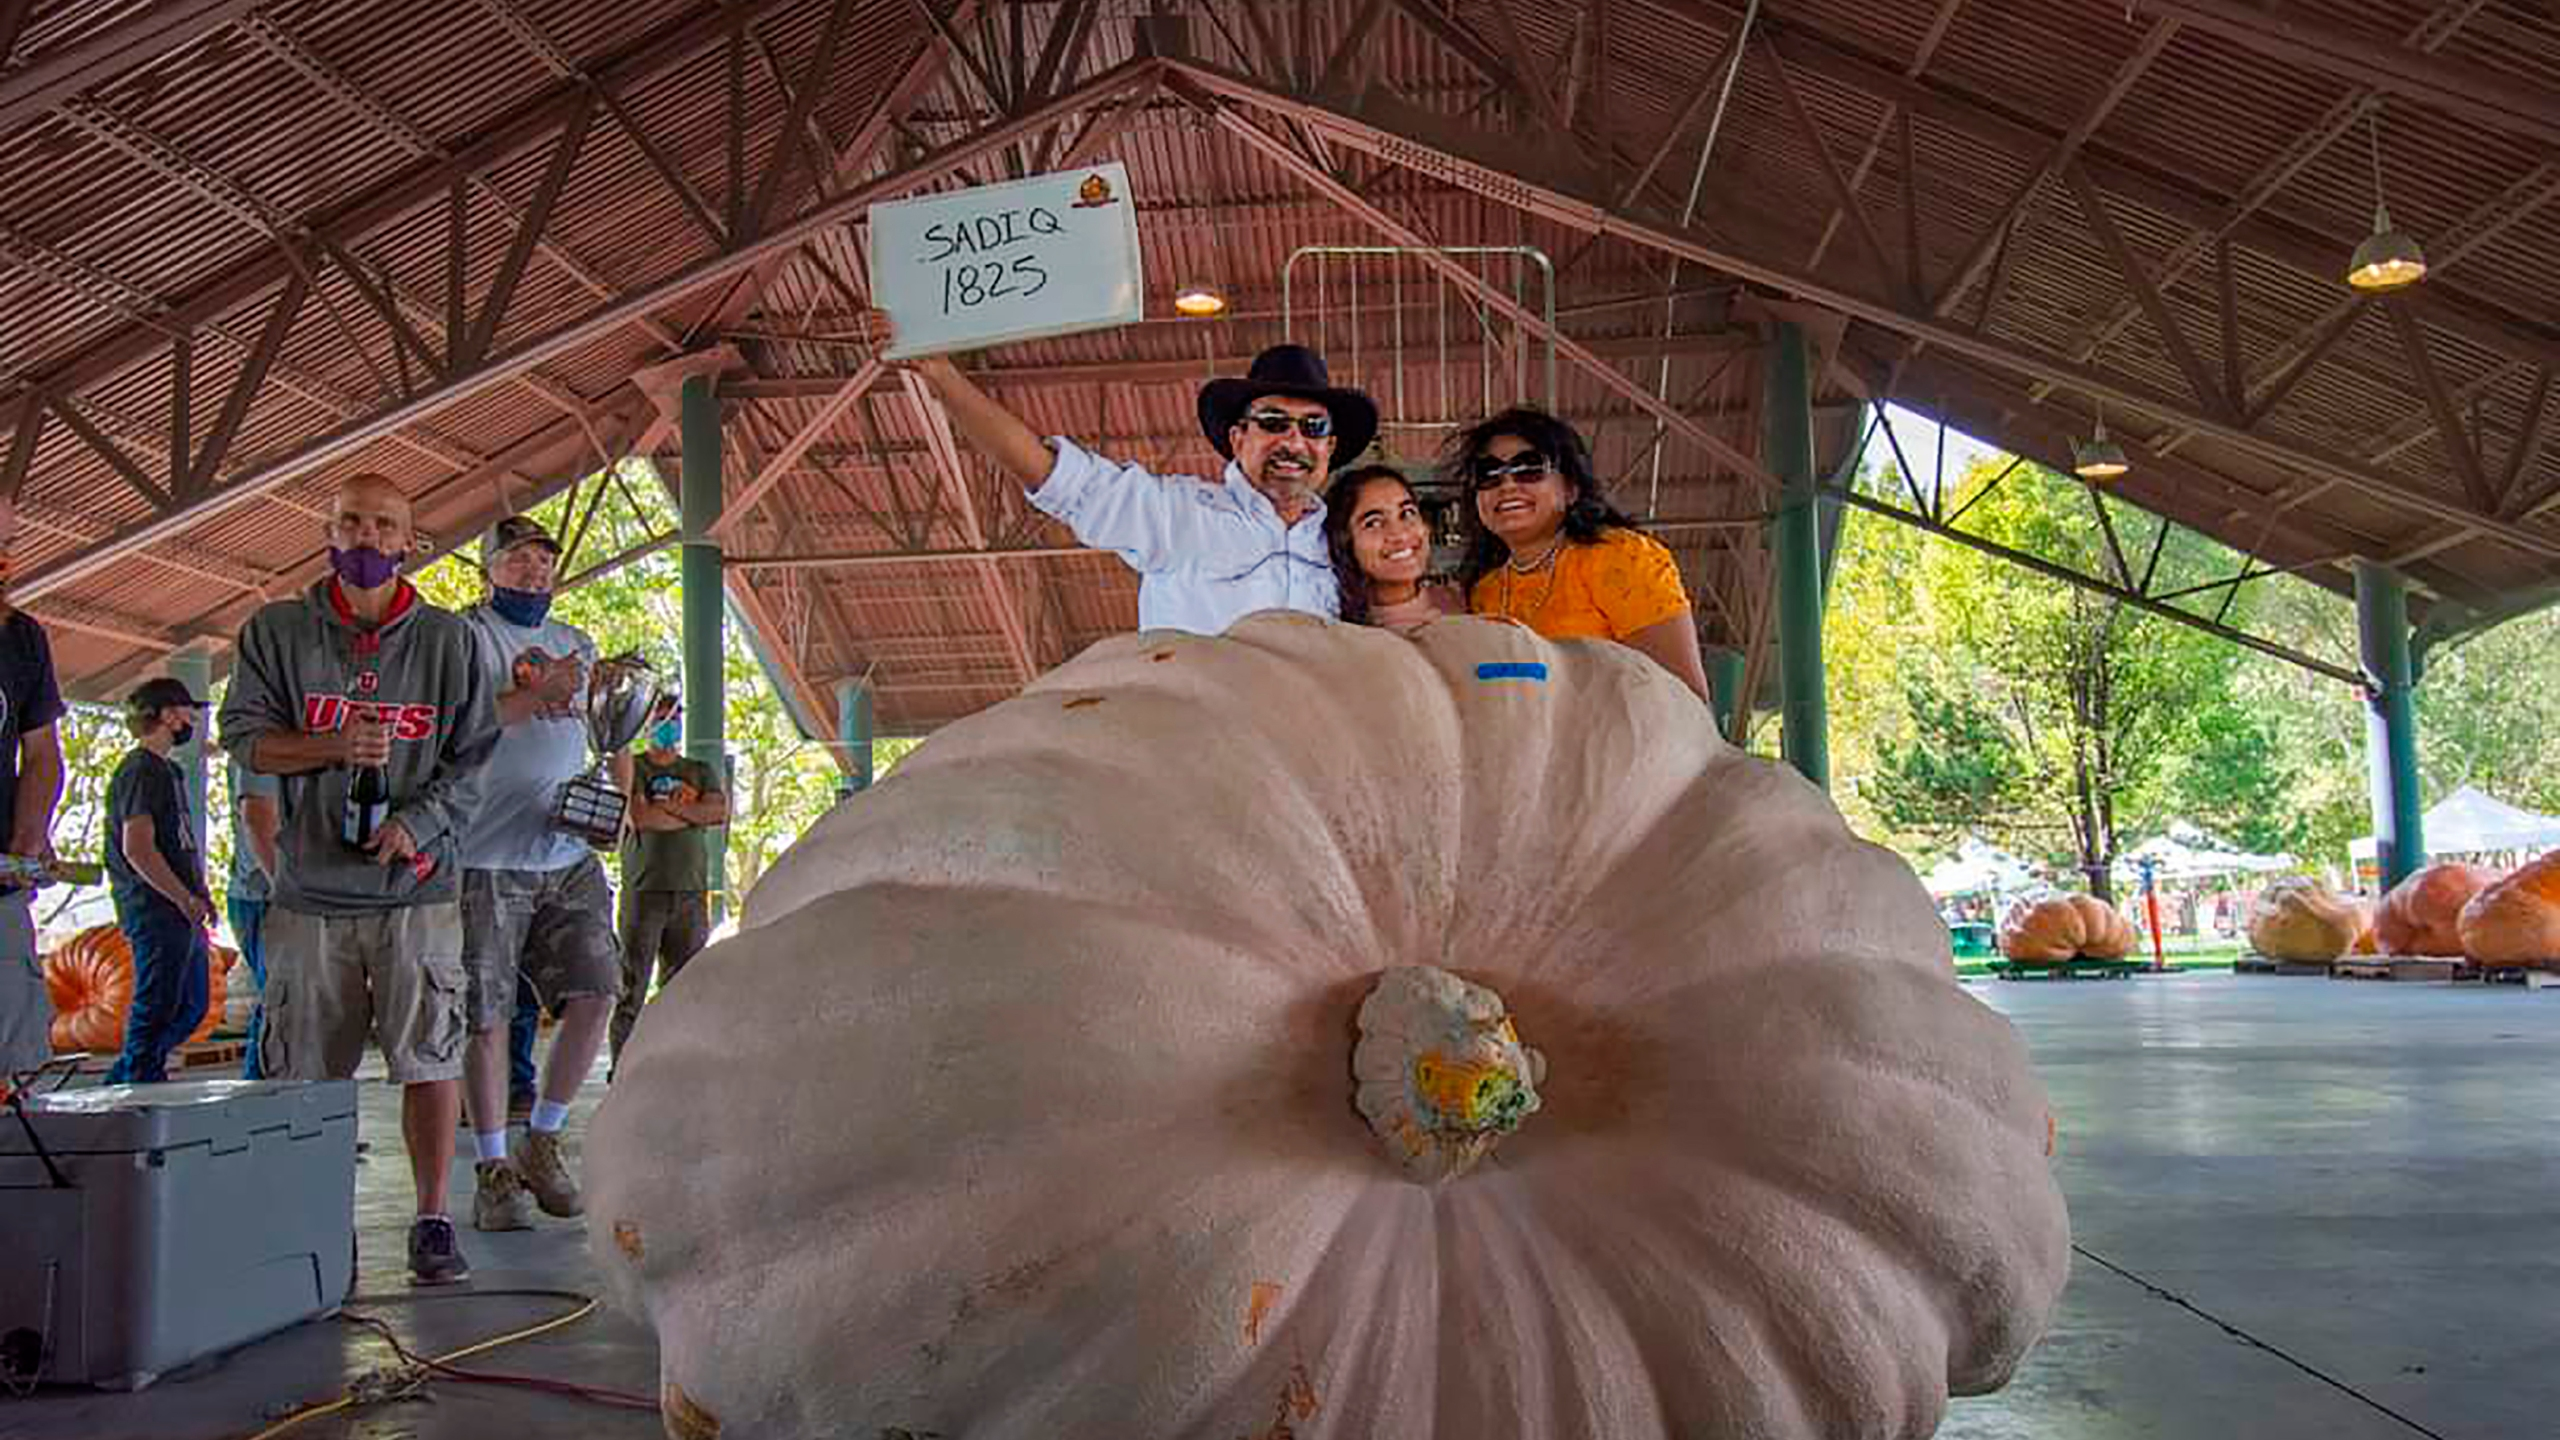 This photo provided by Jim Seamons shows Mohamed Sadiq posing for a photo with his family and his 1,825 pounds (828 kilograms) pumpkin at the 16th Annual UGPG Thanksgiving Point Weigh-Off winning First Place and named the largest pumpkin grown in Utah outside of a greenhouse on Saturday, Sept. 26, 2020 in Lehi, Utah. The Utah Giant Pumpkin Growers has recorded eight pumpkins in Utah this year weighing over 1,000 pounds (454 kilograms), setting a state record. (Ryann Seamons via AP)